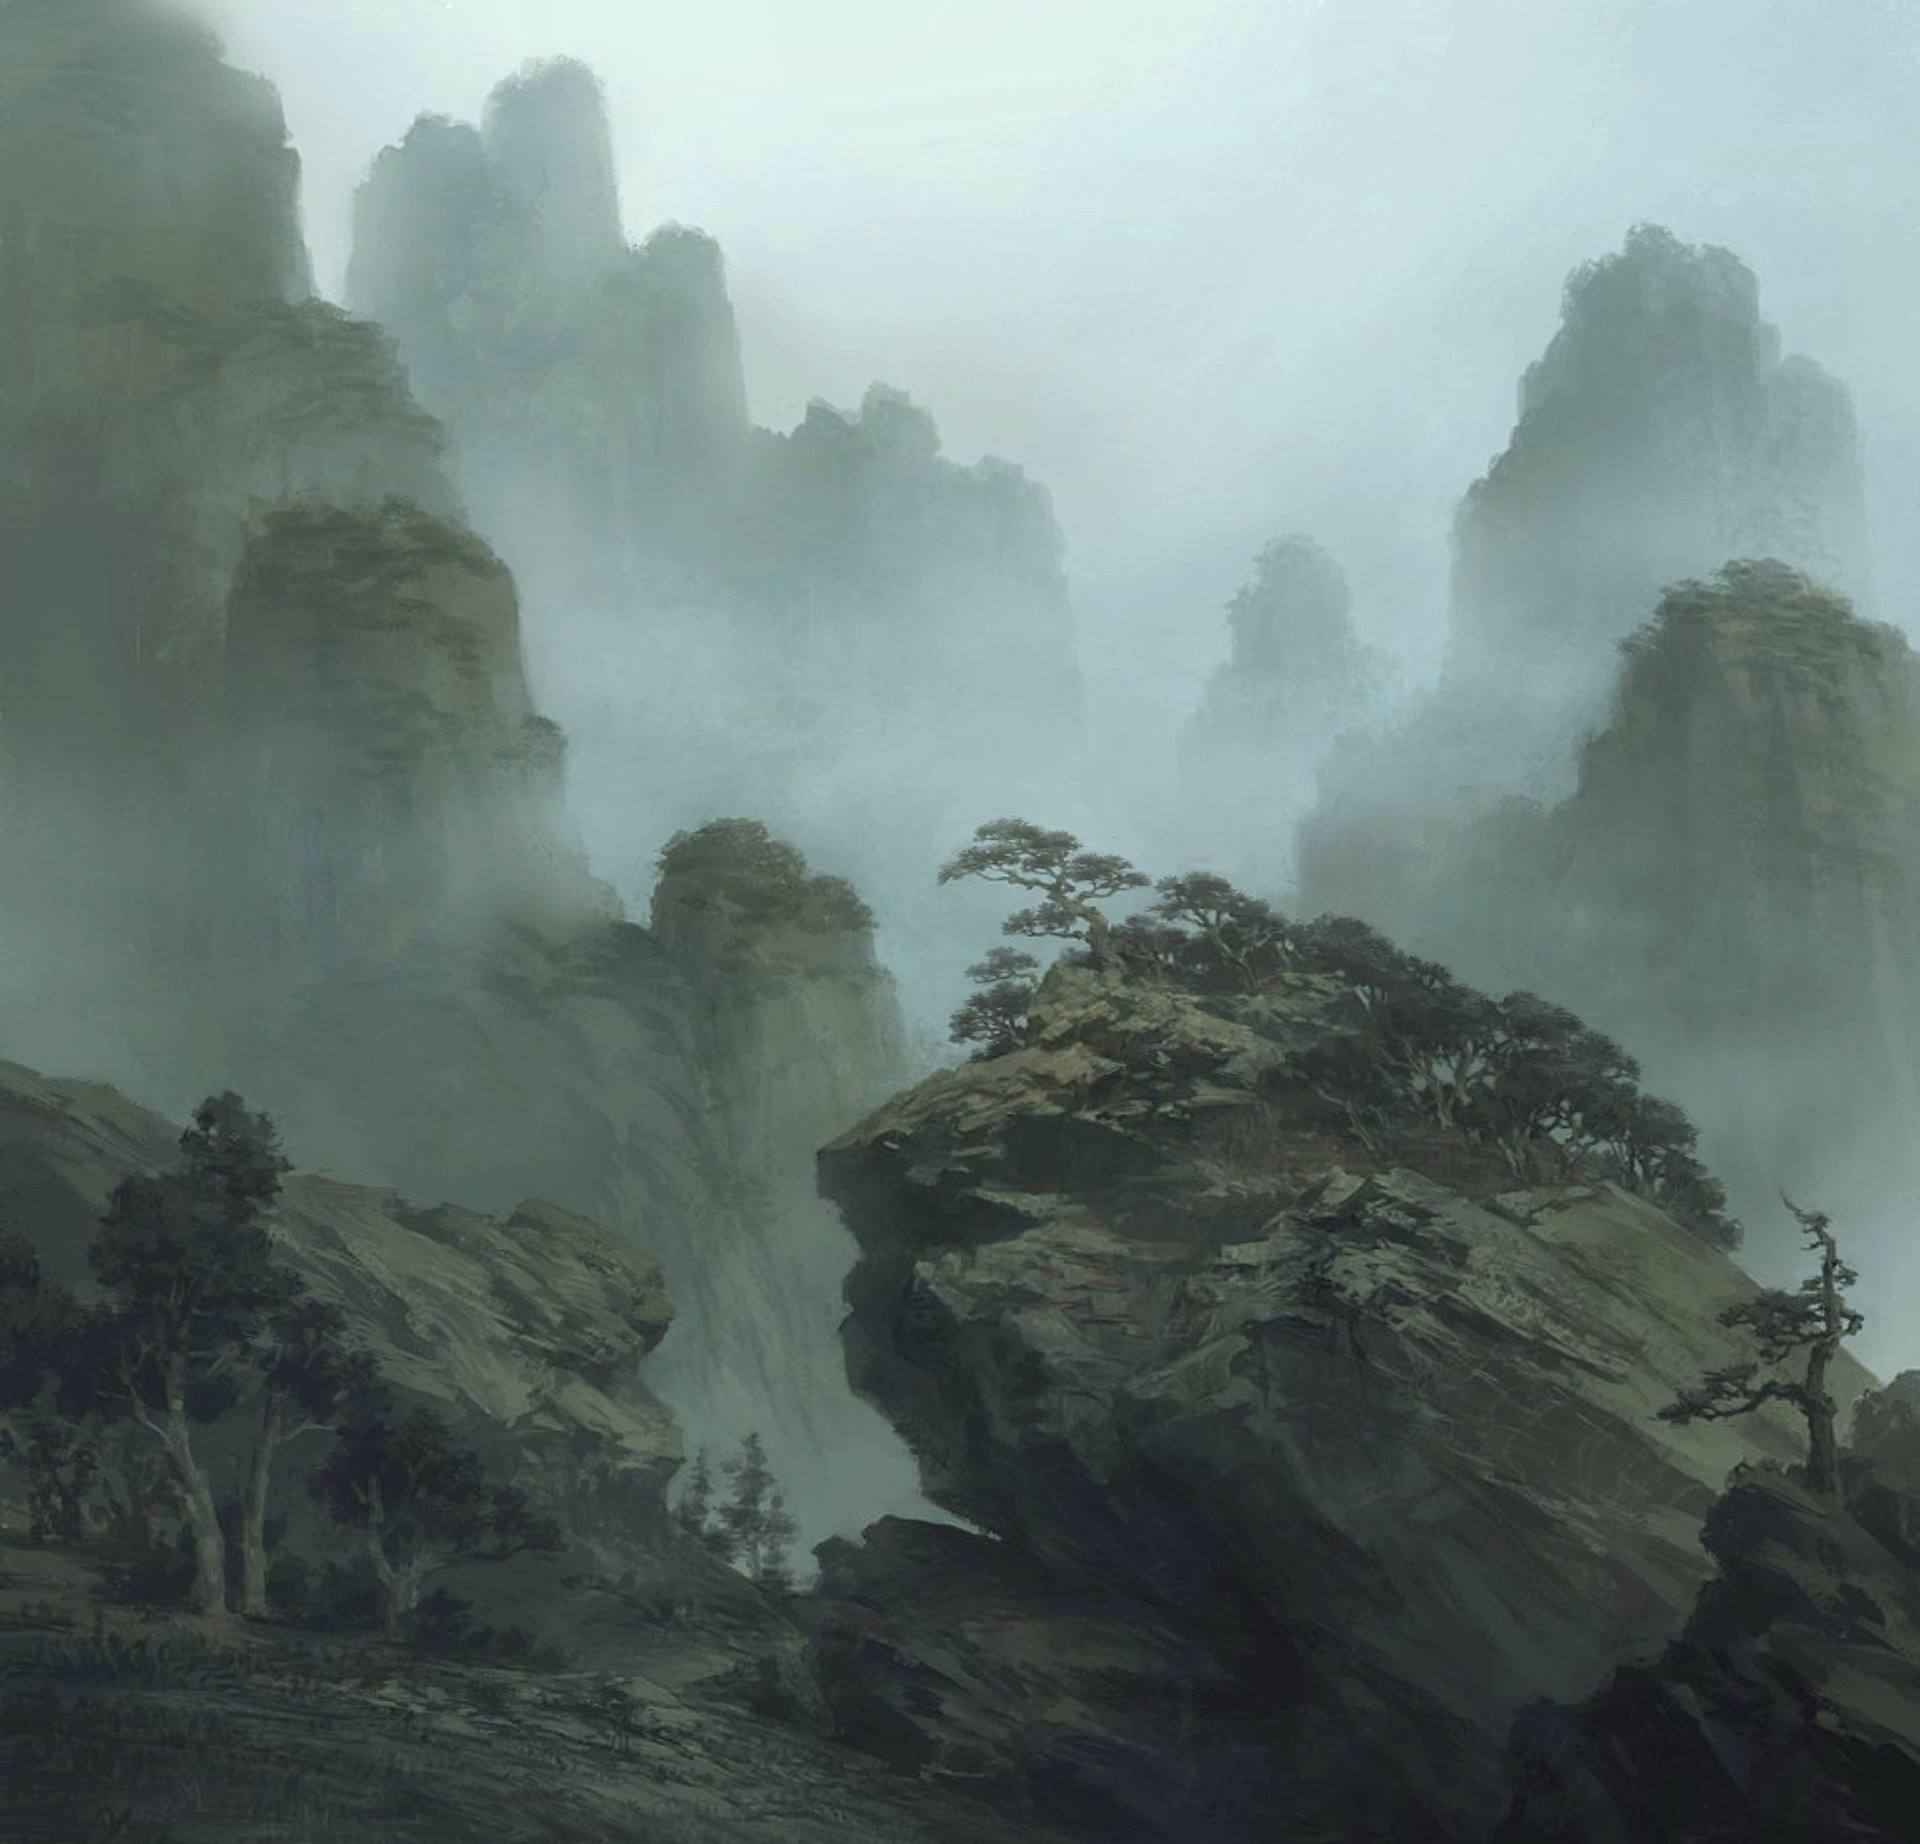 tianhua_xu_digital_painting16